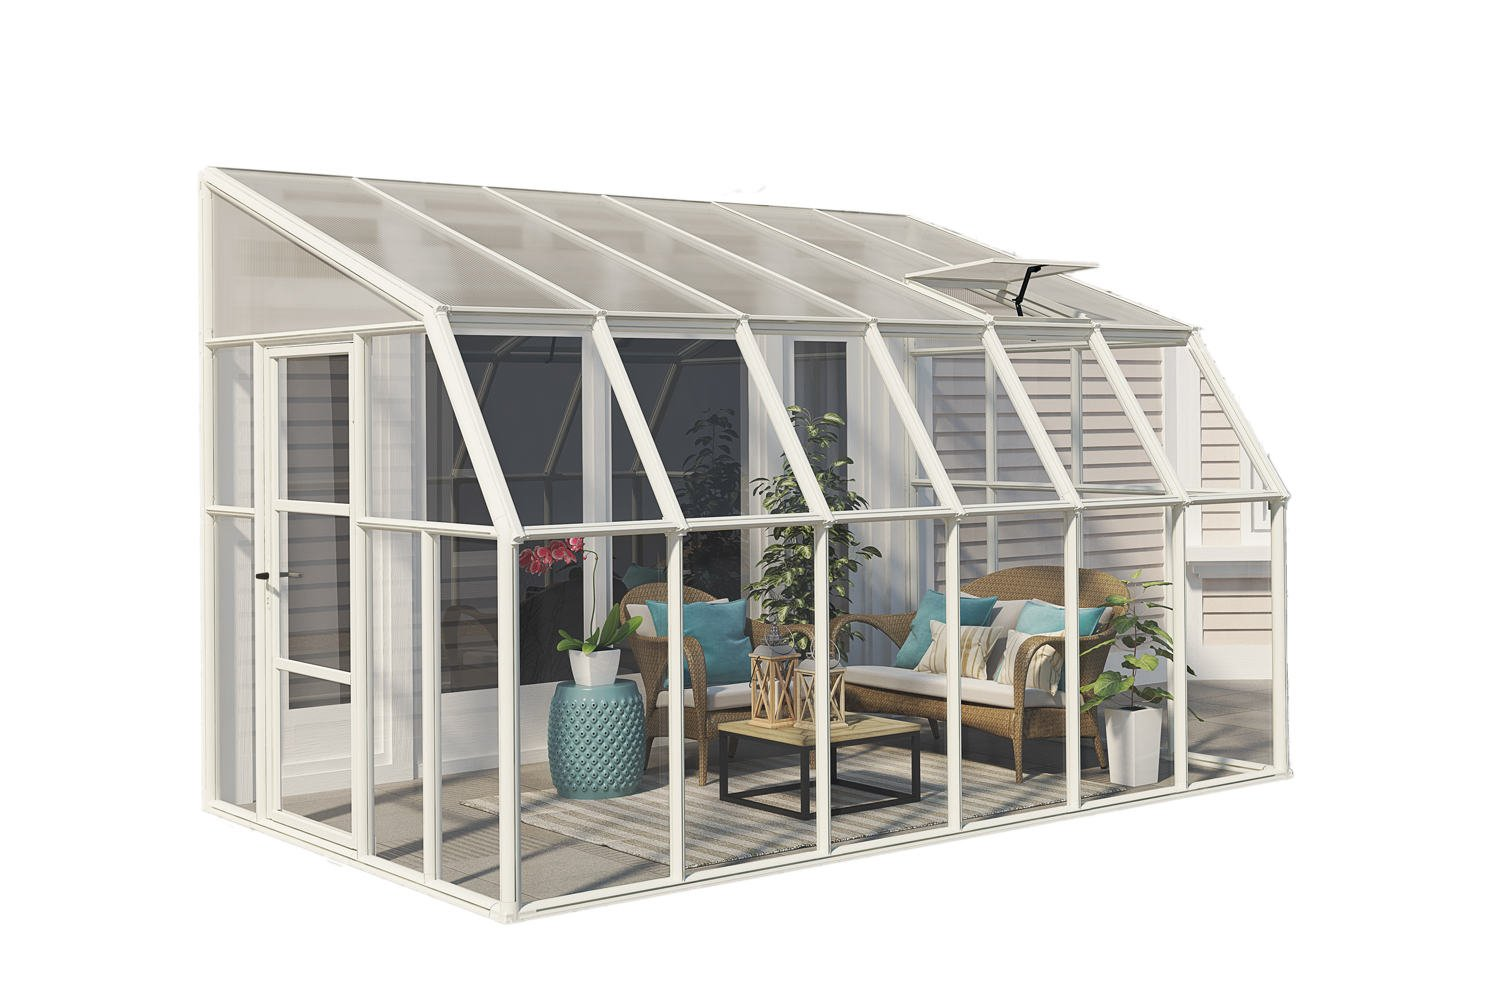 Rion sun room 8x12 lean to greenhouse polycarbonate for Sunroom blueprints free